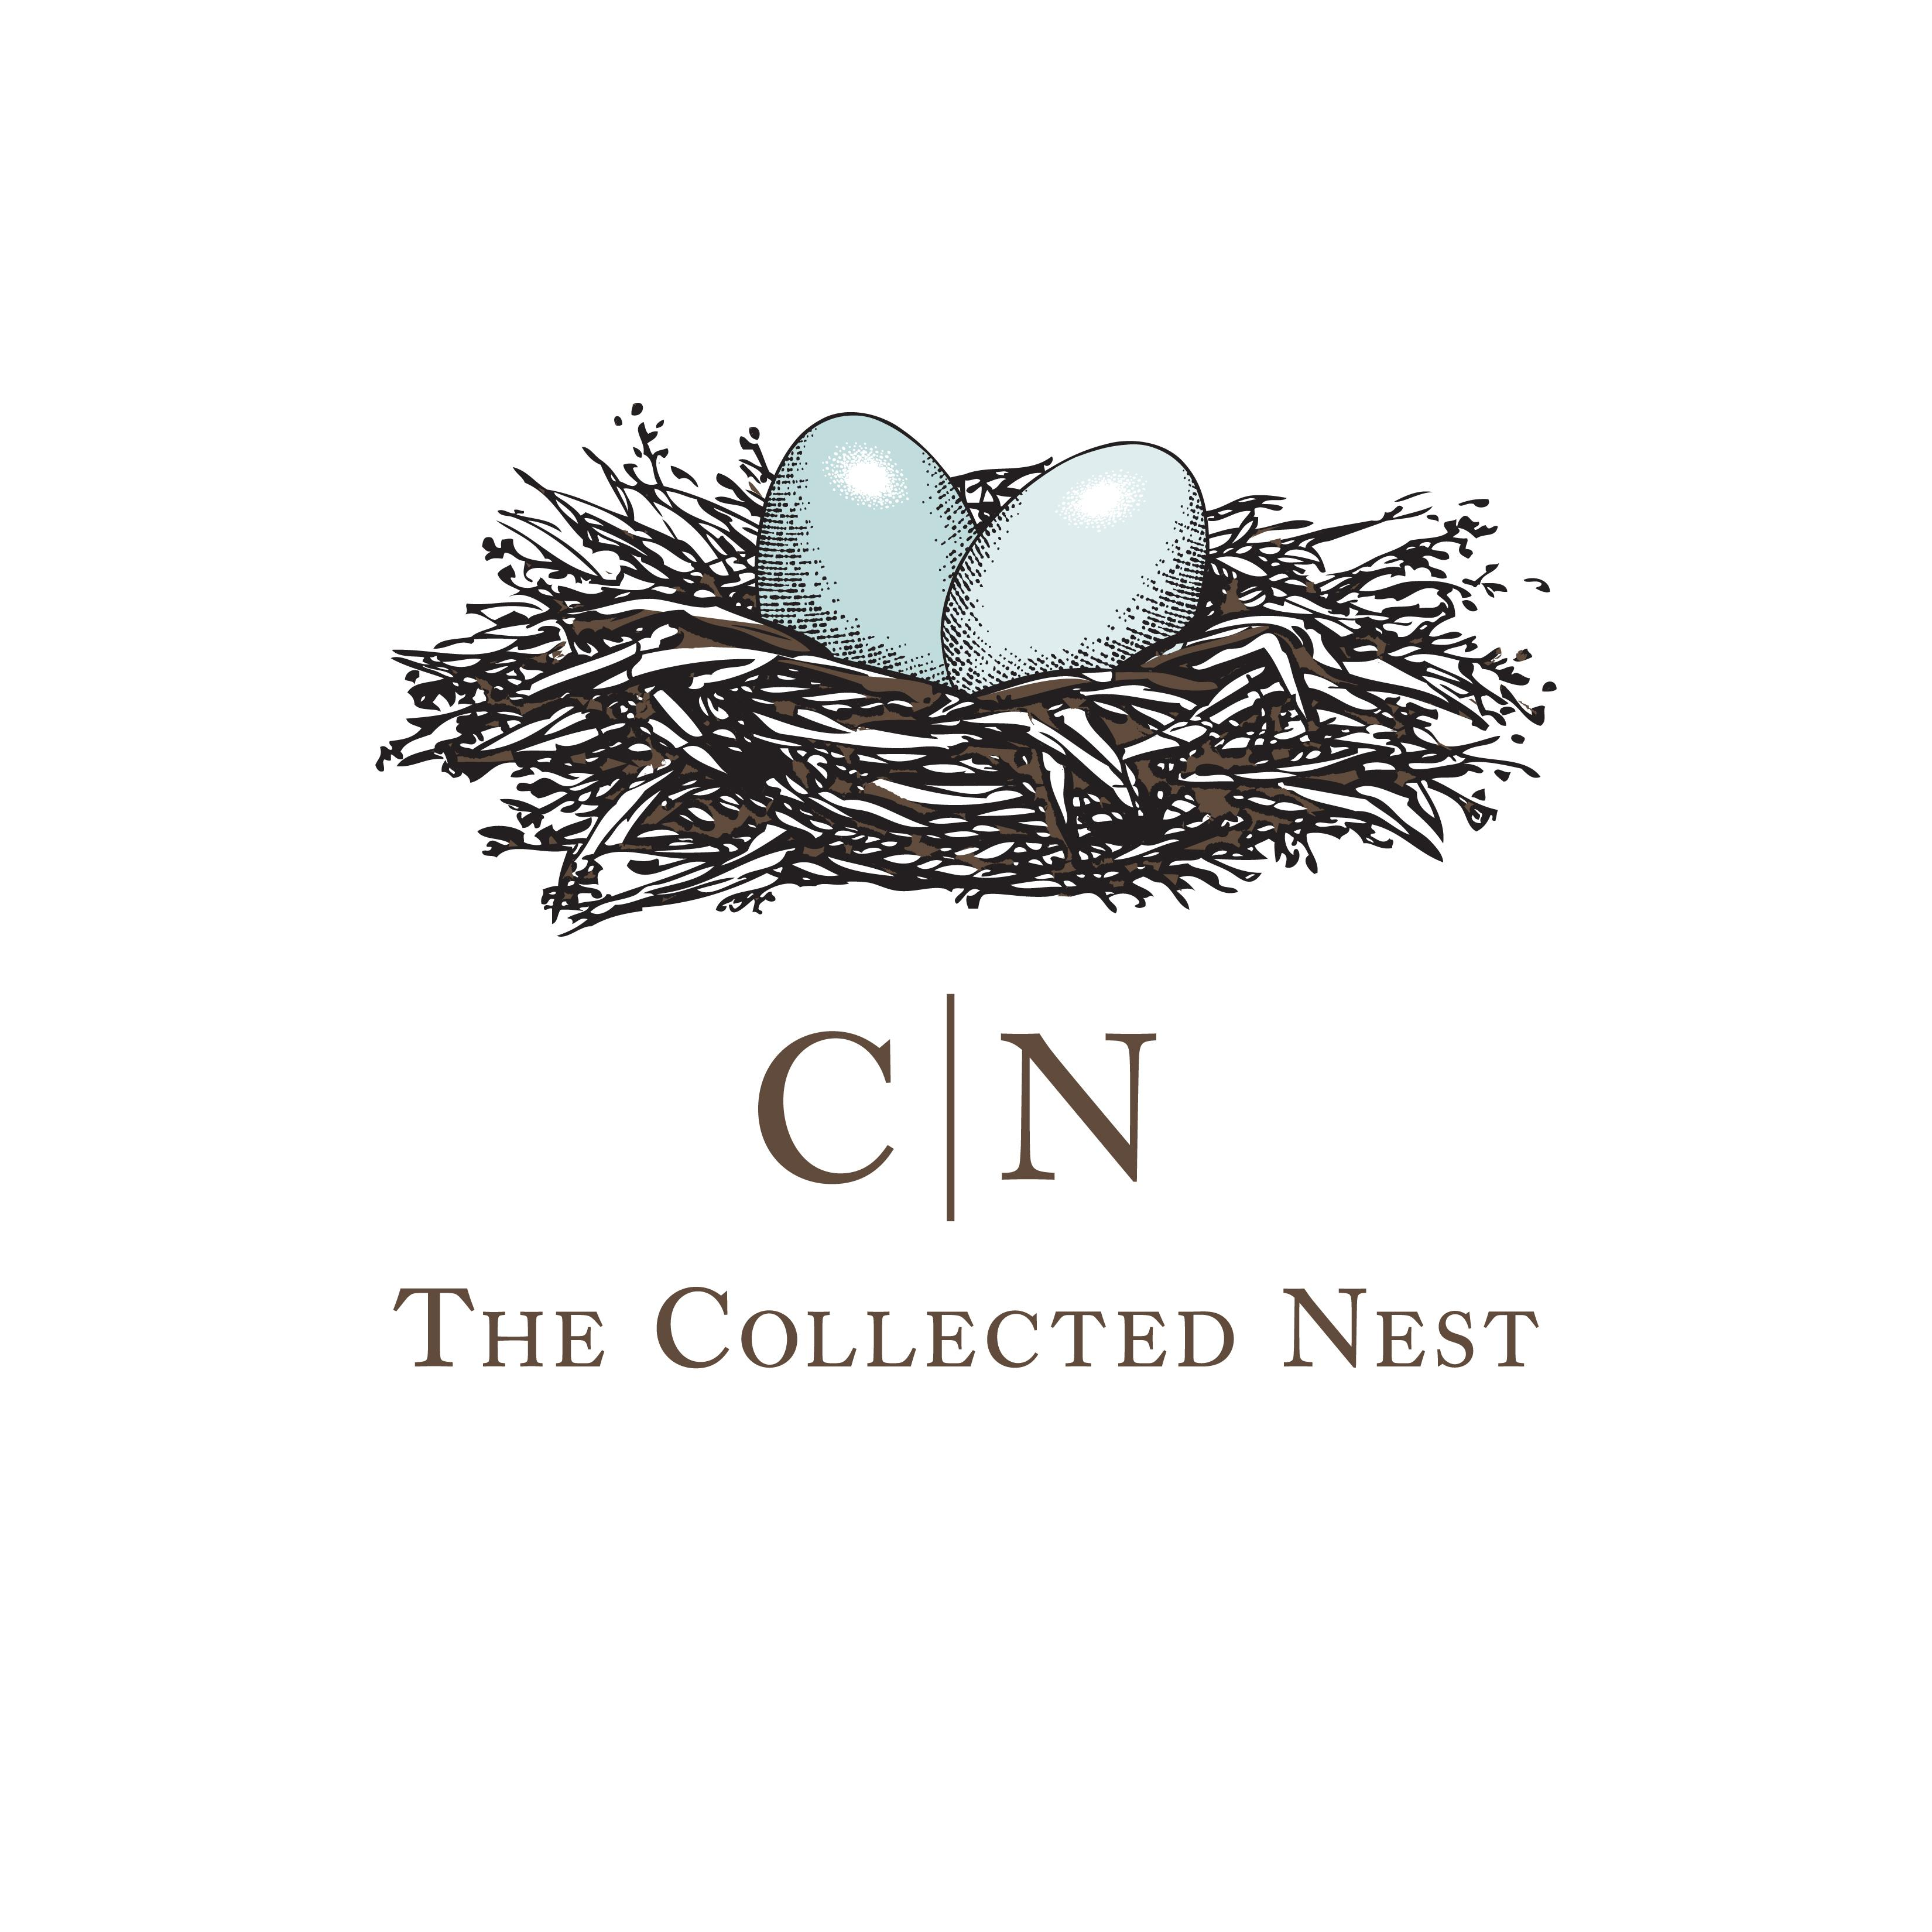 The Collected Nest